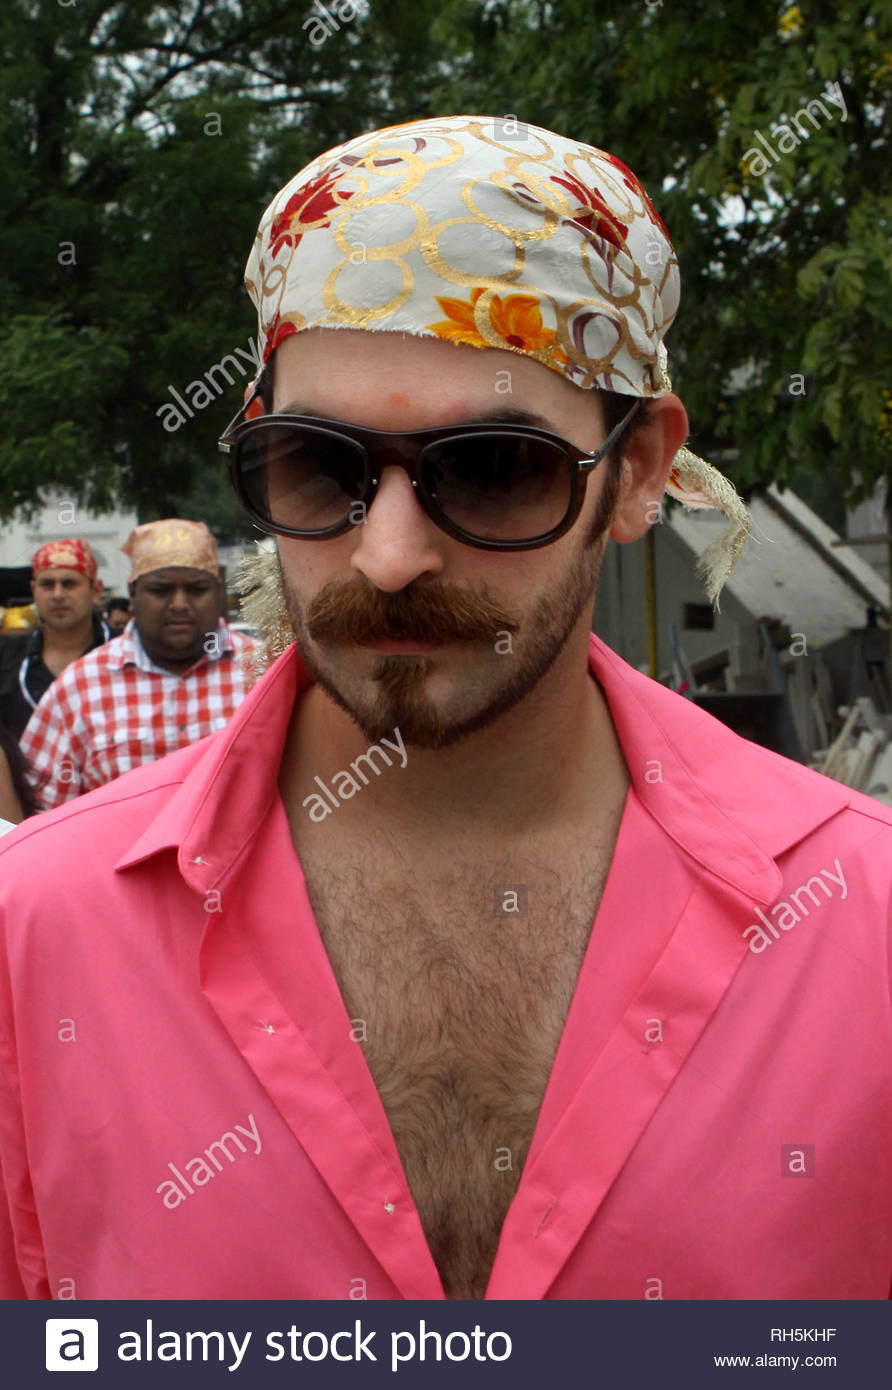 Bollywood actor Neil Nitin Mukesh arrives to offer prayer at the Bangla Saheb Gurudwara for the success of his latest movie Shortcut Romeo, in New Delhi, India on June 18, 2013. Shortcut Romeo, scheduled for release on June 21, is a romantic crime thriller produced by Susi Ganeshan which is a Hindi remake of the filmmakerÕs own Tamil film Thiruttu Payale, starring Neil Nitin Mukesh, Puja Gupta and Ameesha Patel. The film was screened at Marche du Film at Cannes Film Festival in May 2013. (Imtiyaz Khan) Stock Photo